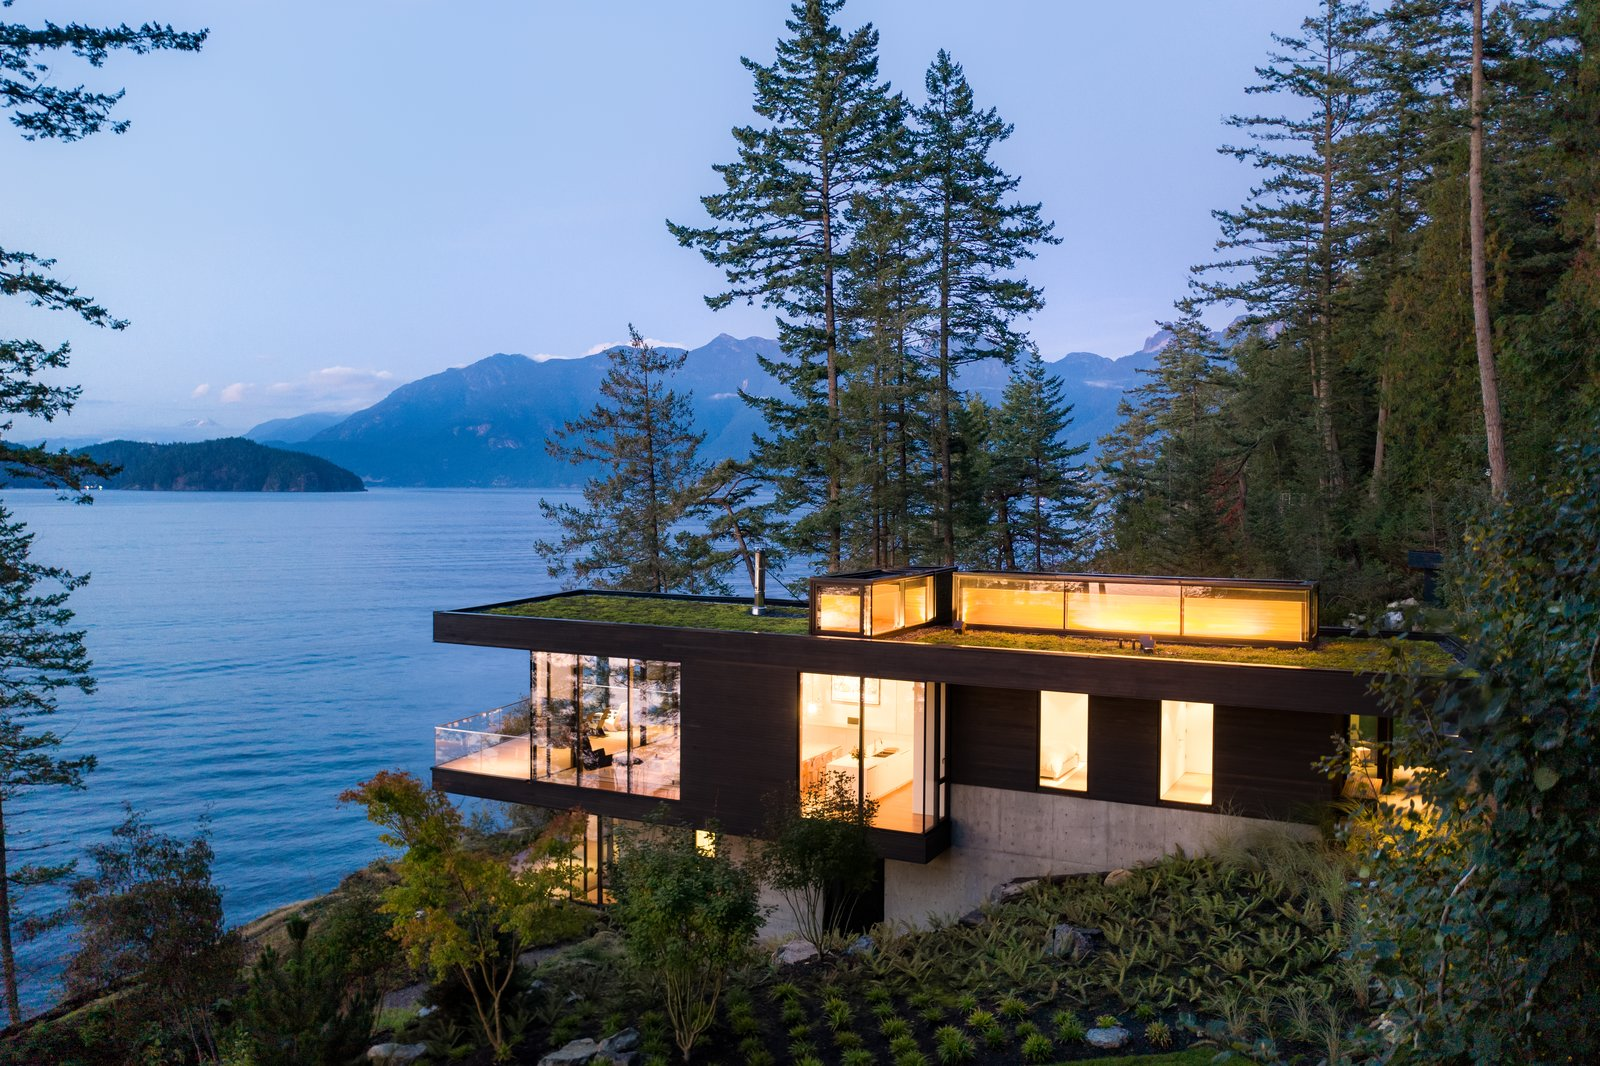 Exterior view of Bowen Island House by office of mcfarlane biggar architects + designers.